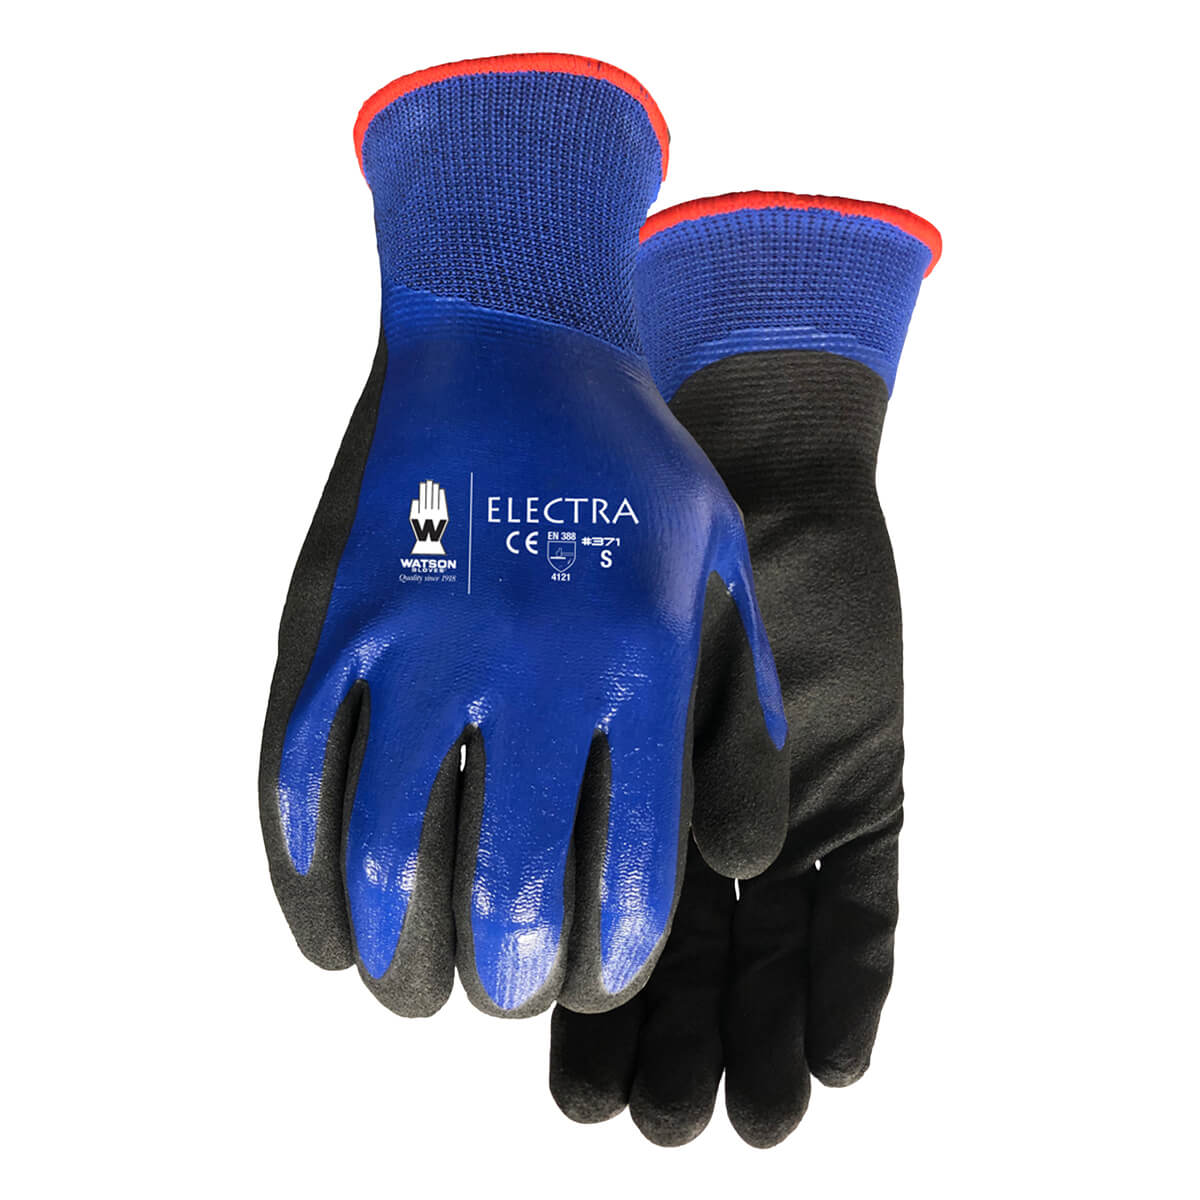 Electra Water Resistant - Gloves - S